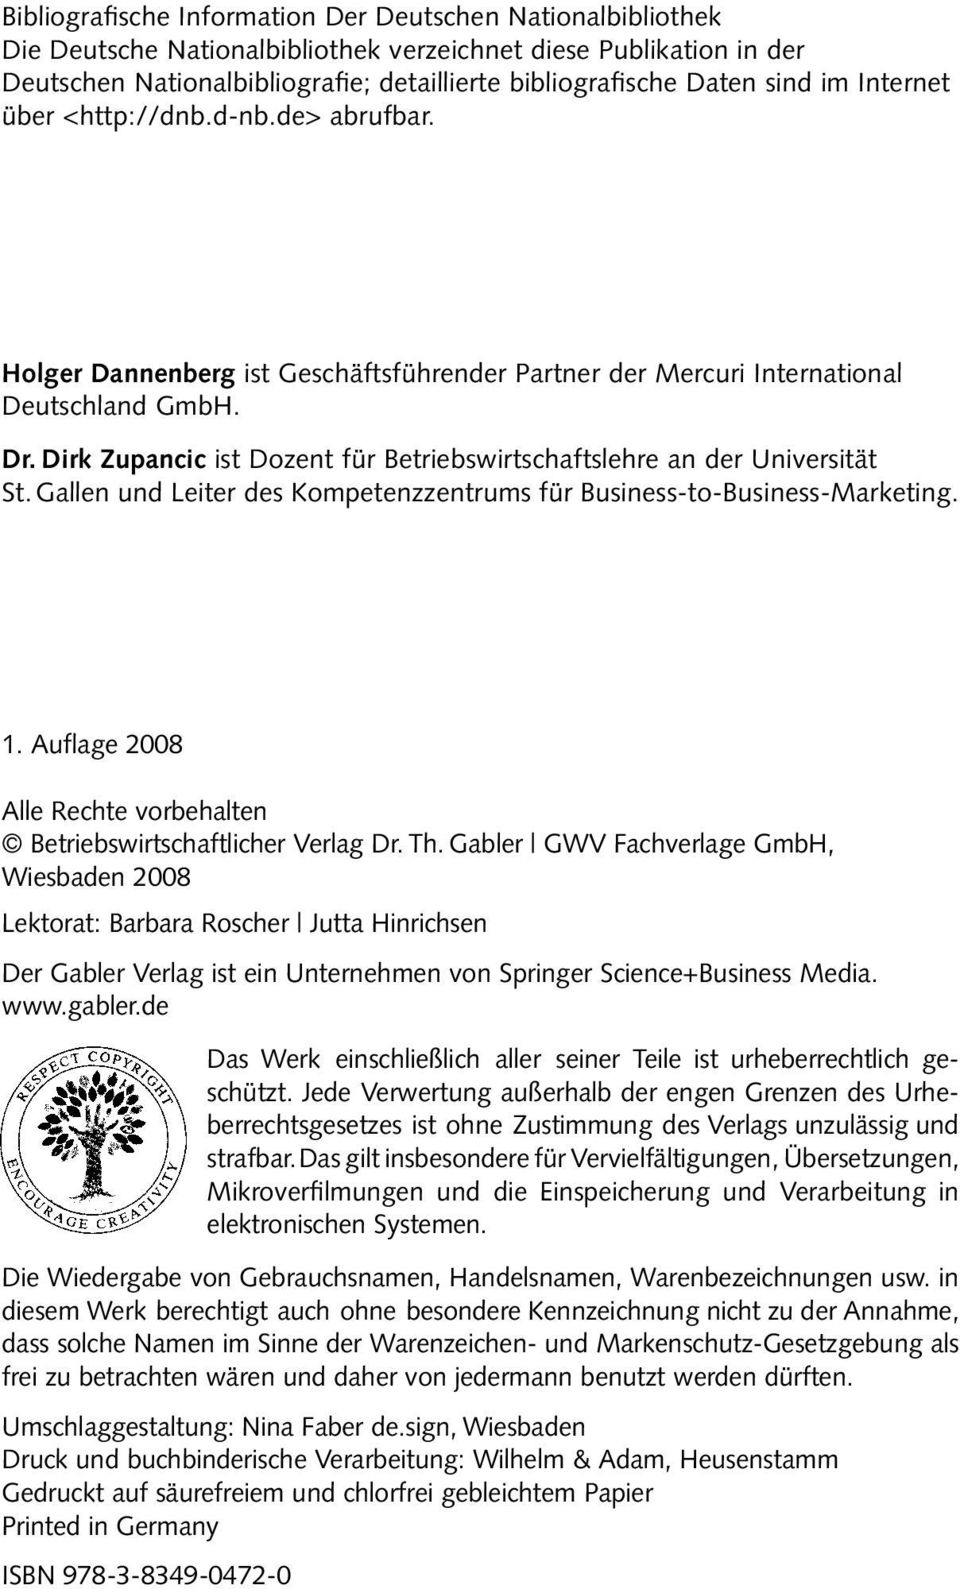 Dirk Zupancic ist Dozent für Betriebswirtschaftslehre an der Universität St. Gallen und Leiter des Kompetenzzentrums für Business-to-Business-Marketing. 1.